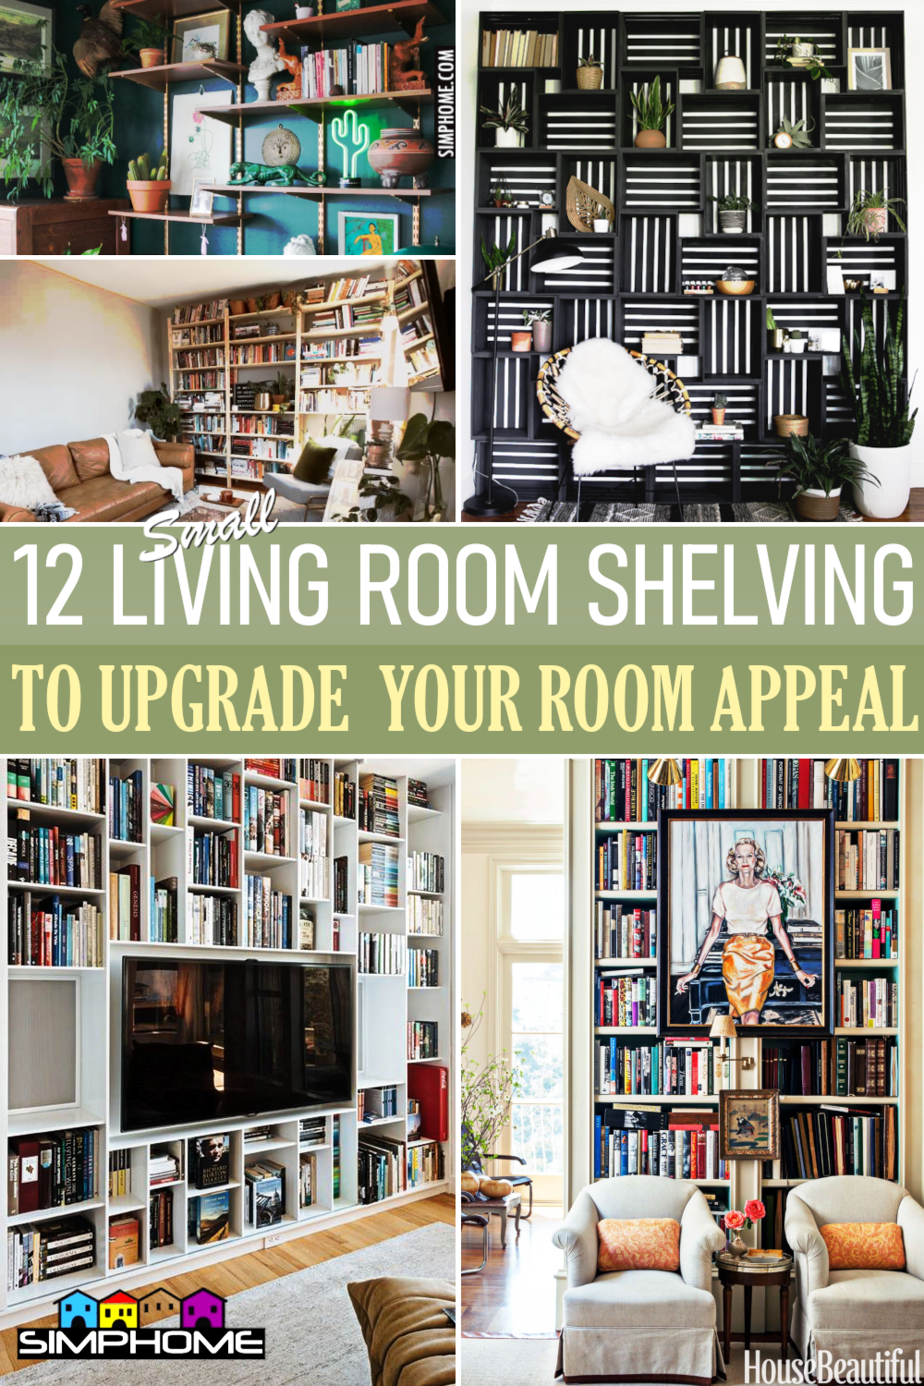 12 Living Room Shelving Ideas via Simphome.comFeatured